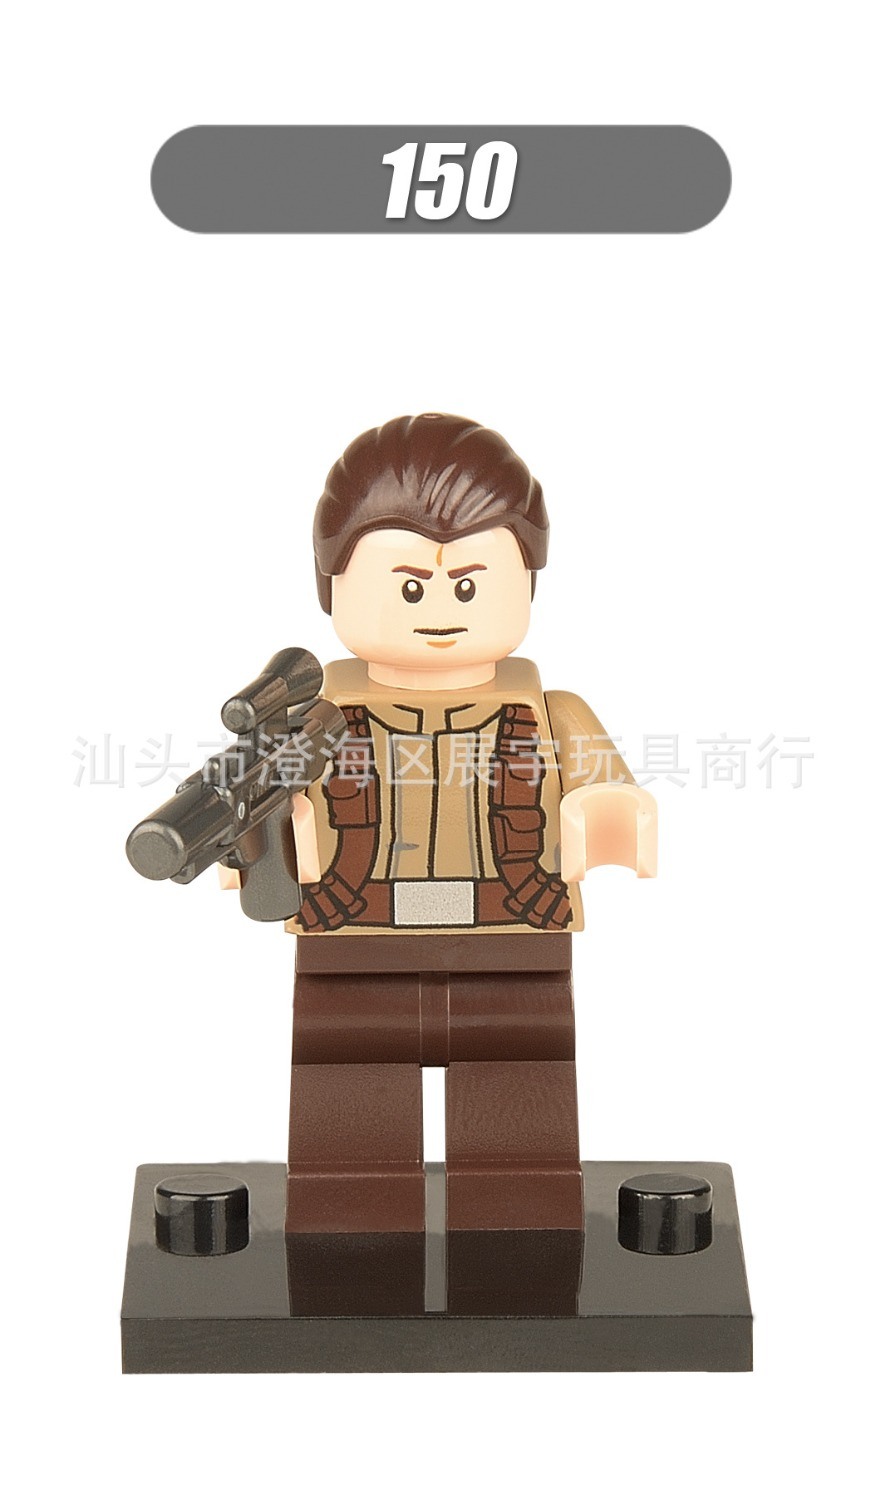 XINH 150 Star Wars 7 Minifigures Single Sale Rebels Man Storm soldiers The Force Awakens Building